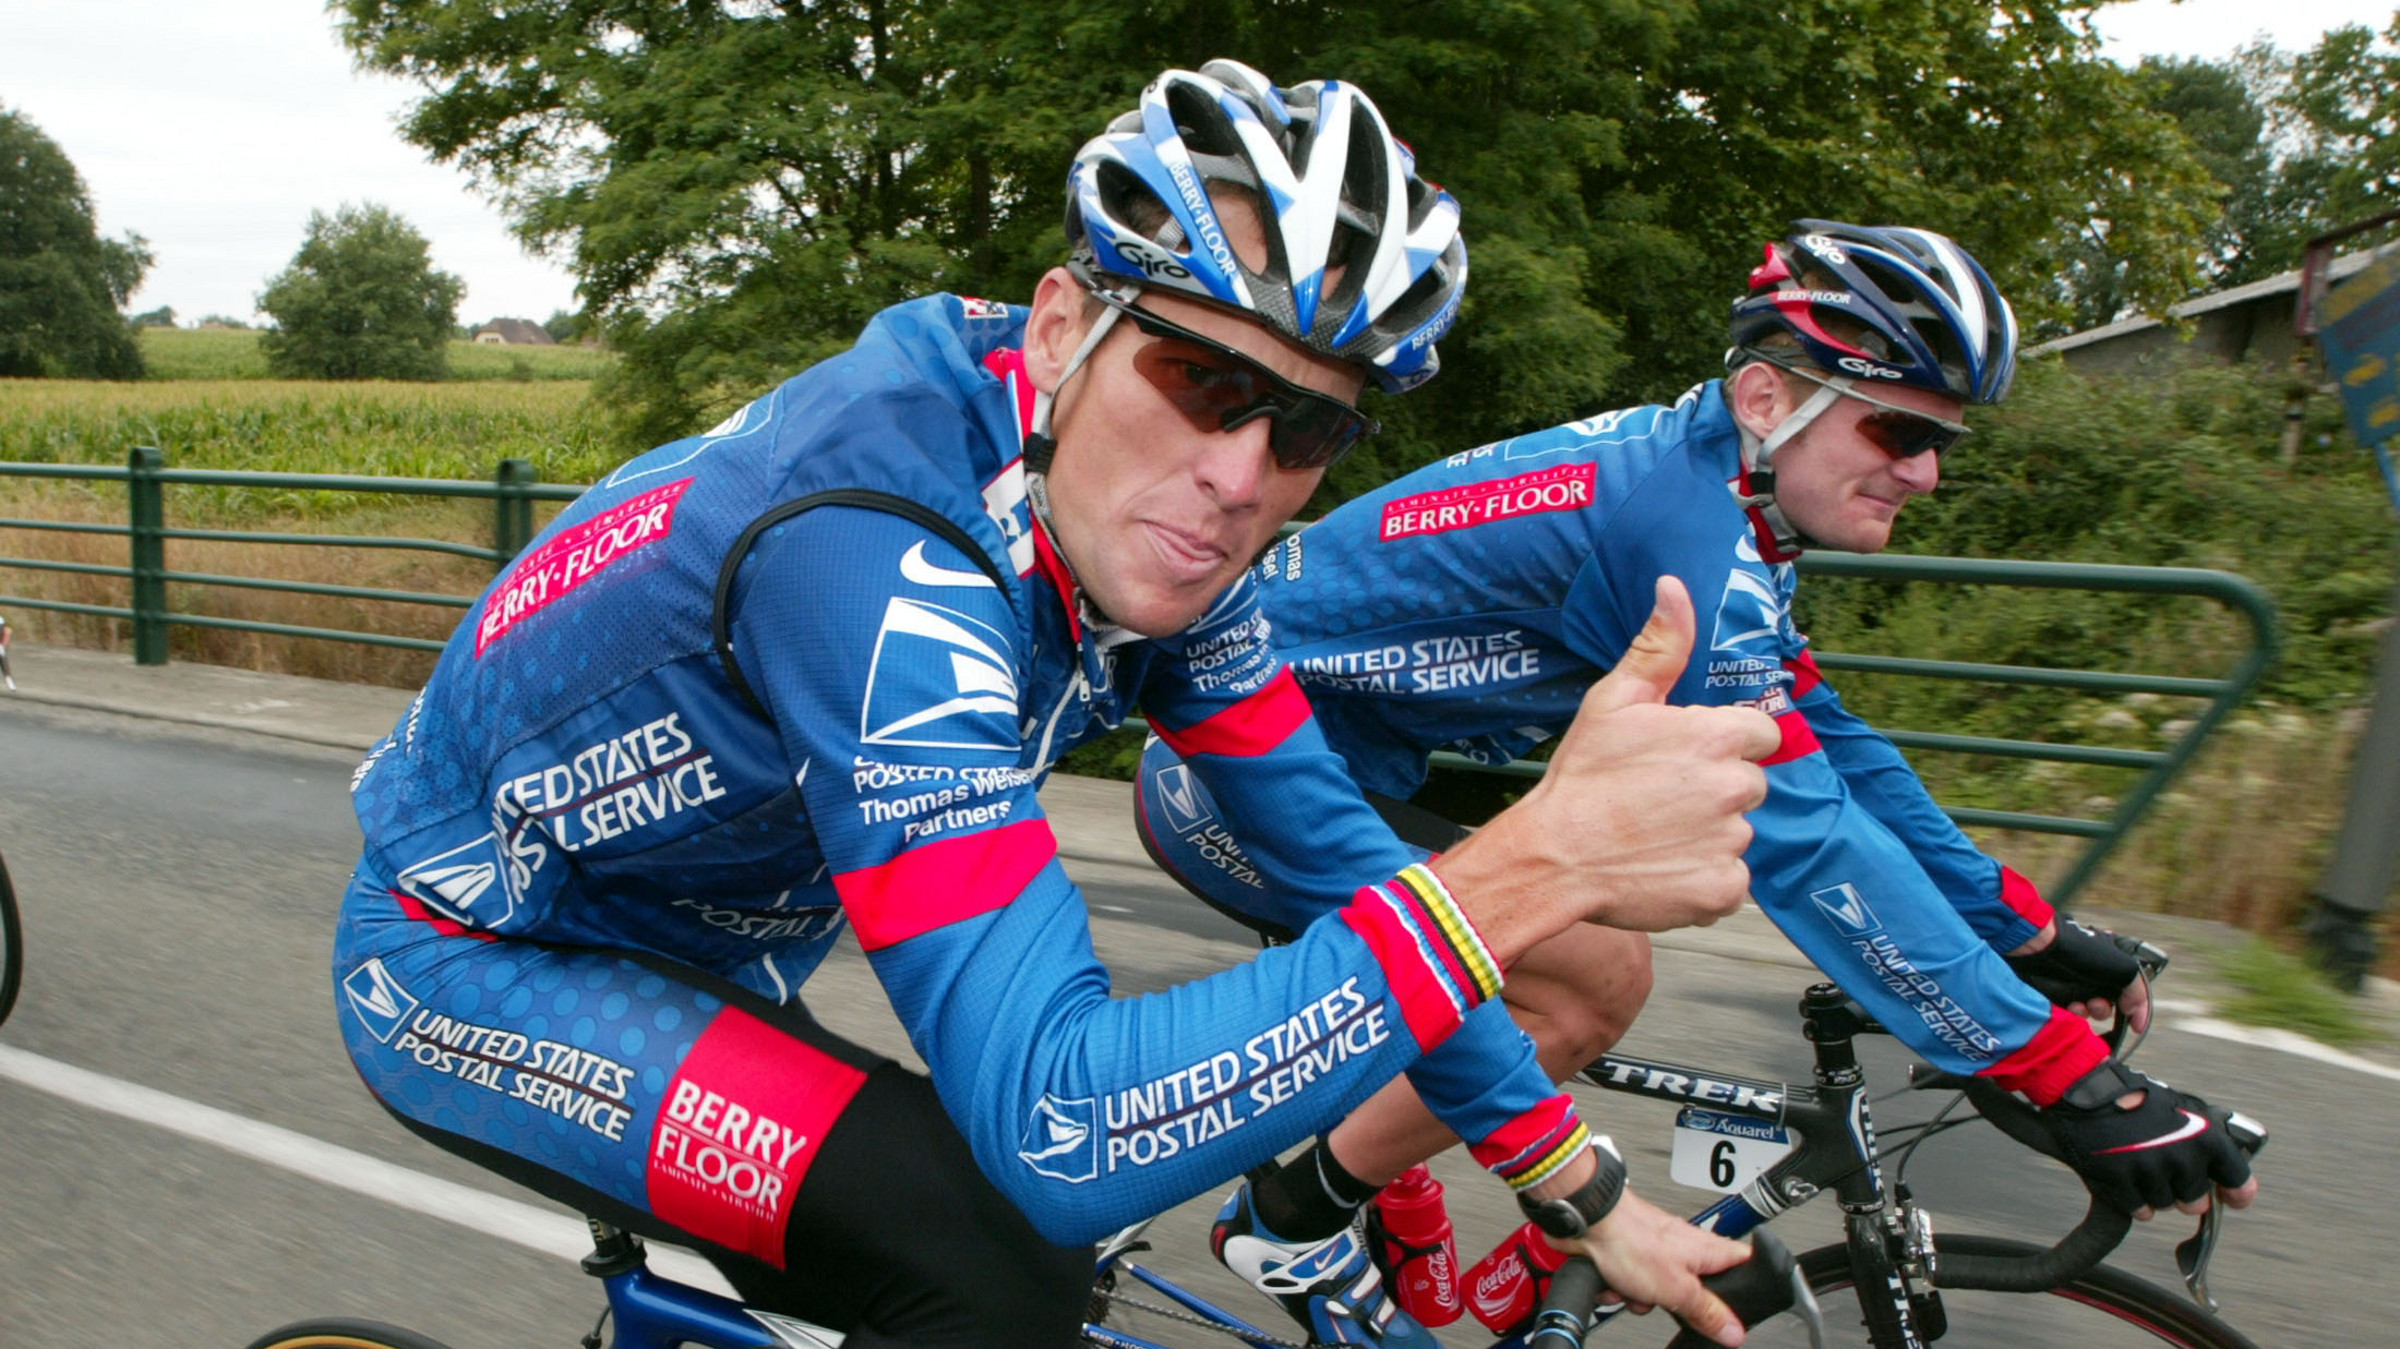 LANCE ARMSTRONG OF THE USA RIDES WITH TEAM MATE FLOYD LANDIS OF THE USA DURING A PRACTICE SESSION IN THE SECOND REST DAY OF THE TOUR DE FRANCE.